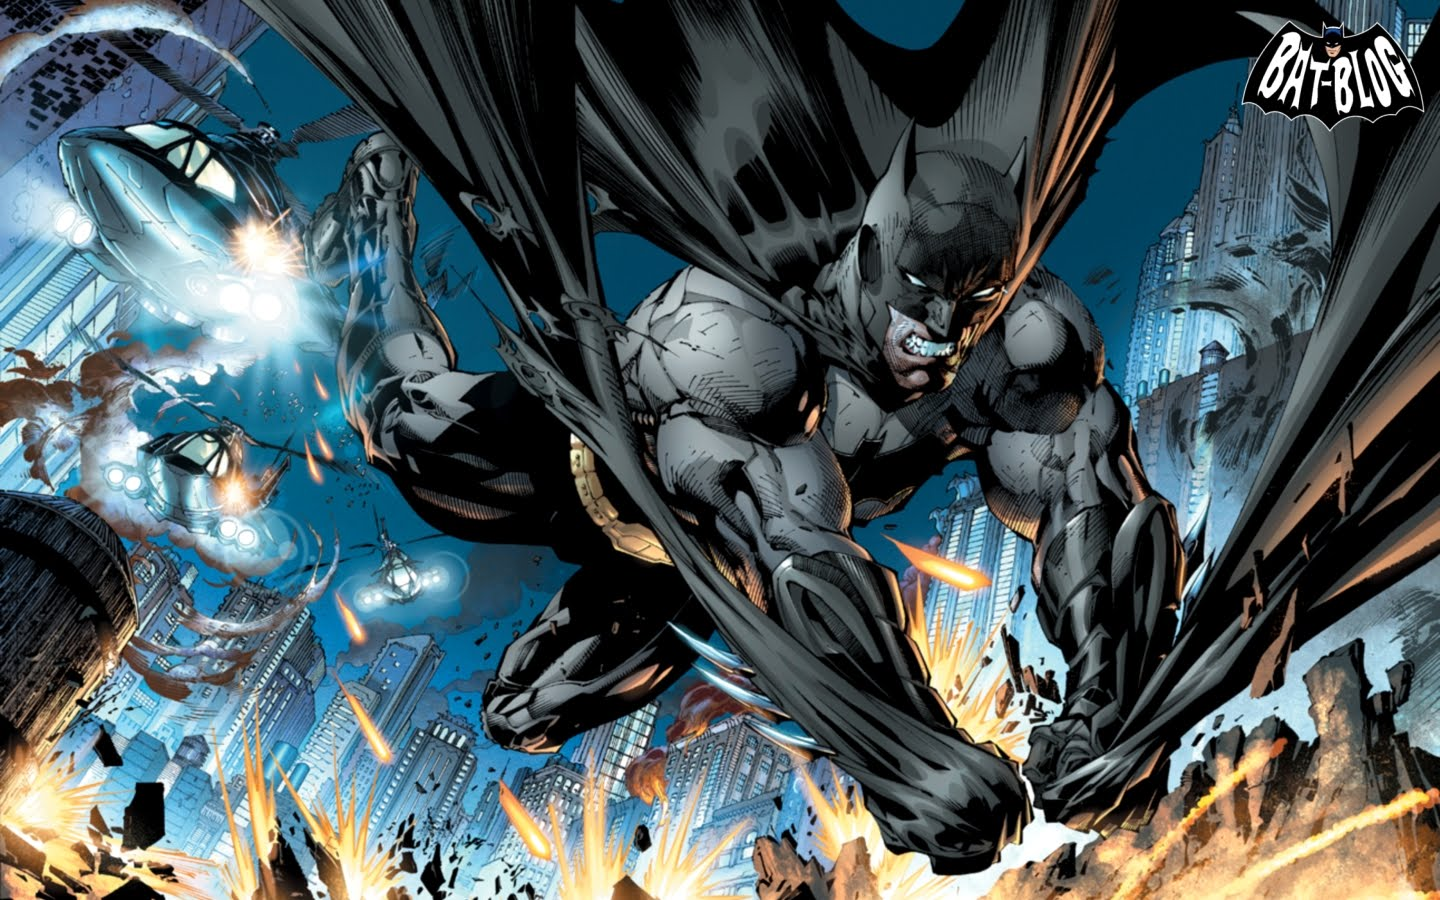 http://1.bp.blogspot.com/-0LH81-v8SXc/TjgkQRXBYuI/AAAAAAAAP2Q/1YmUAiCS078/s1600/wallpaper-new-batman-comic-book.jpg